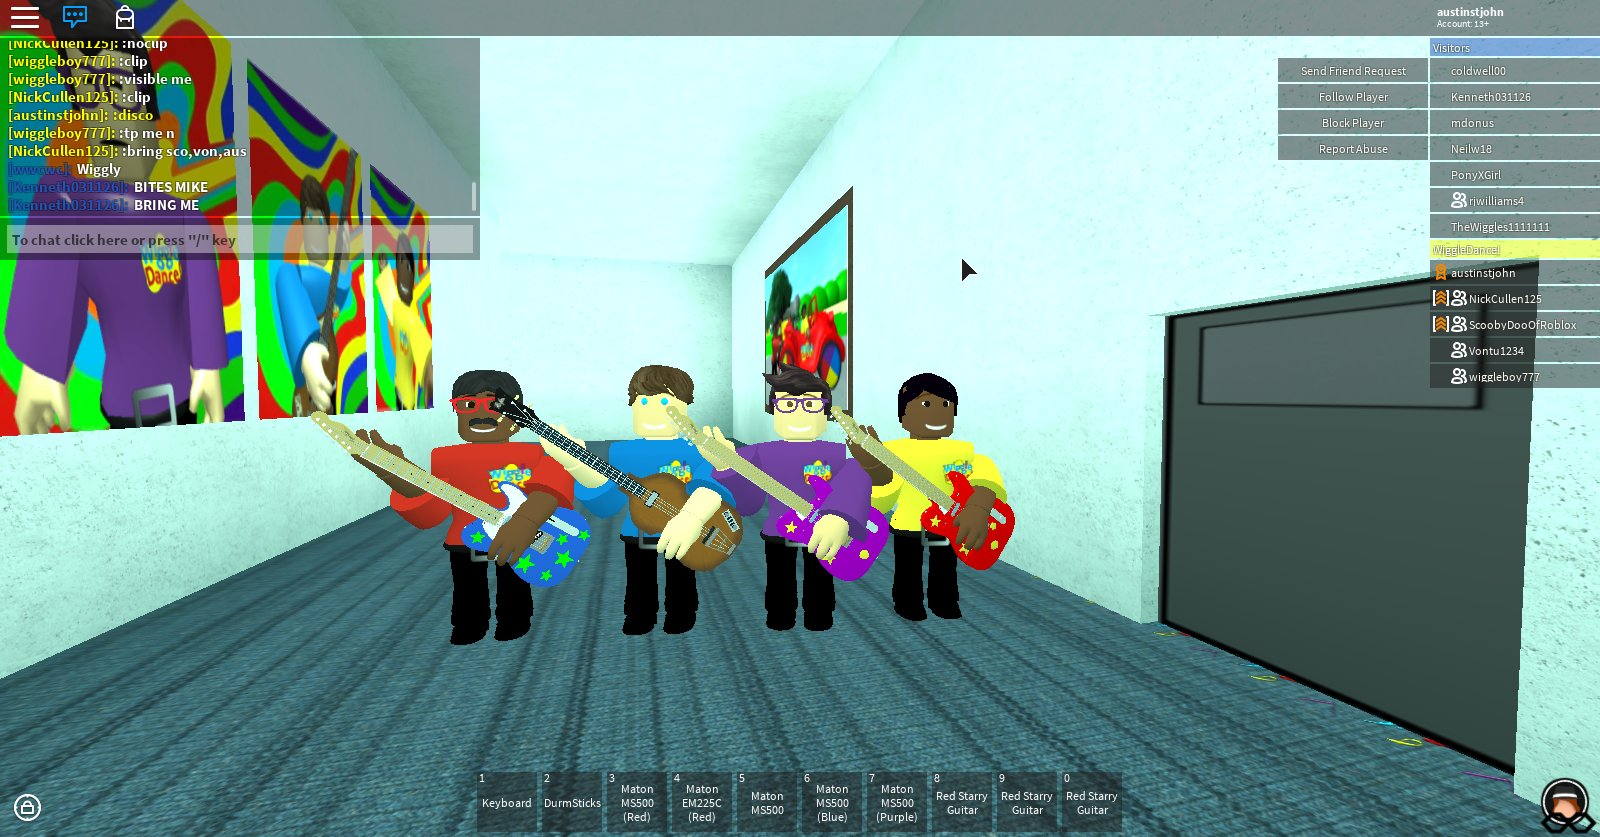 Wiggle Dance Roblox On Twitter What An Awesome Show We Did